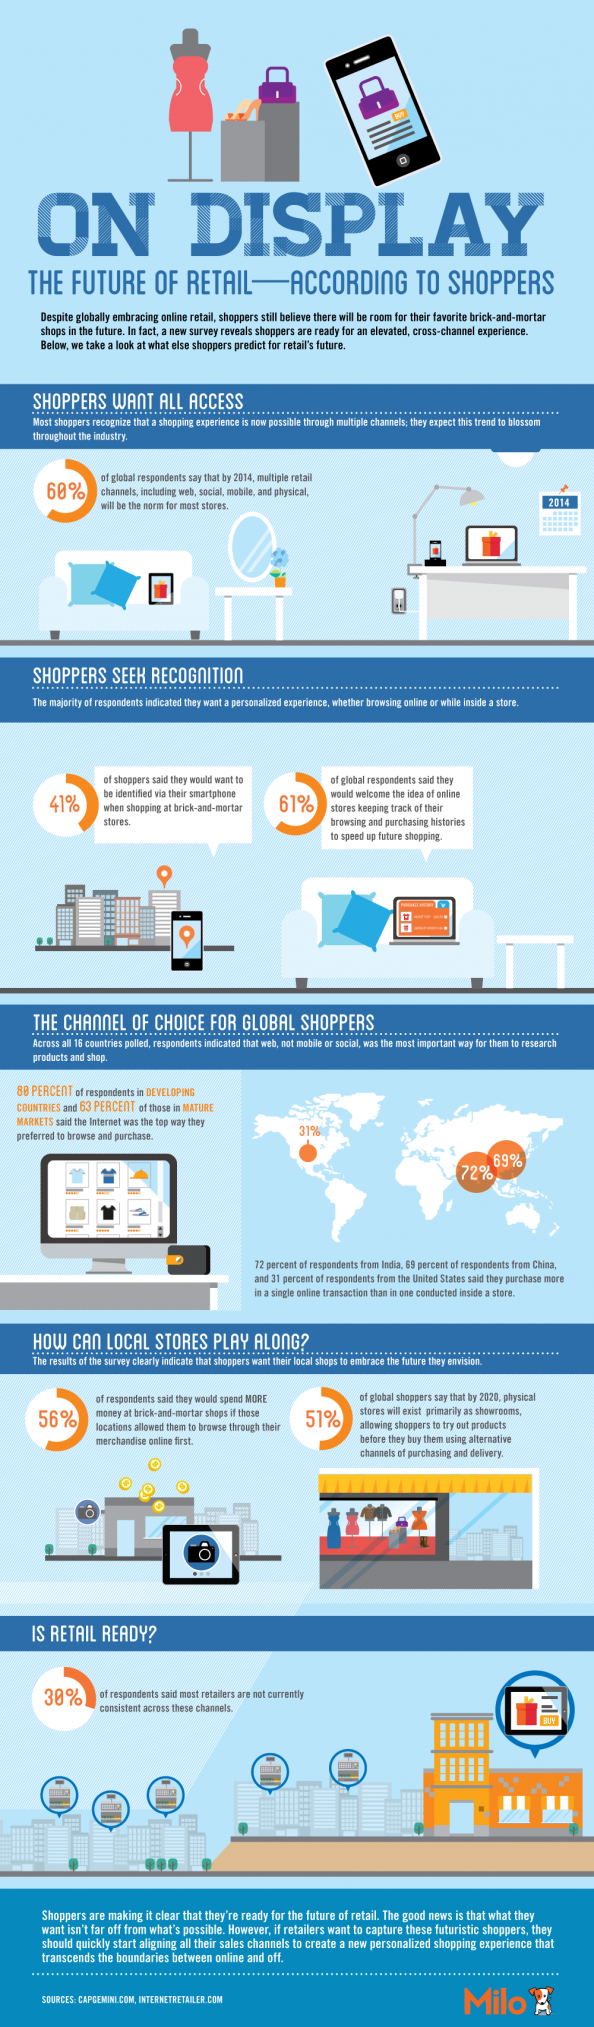 The Future of Retail — According to Shoppers Infographic